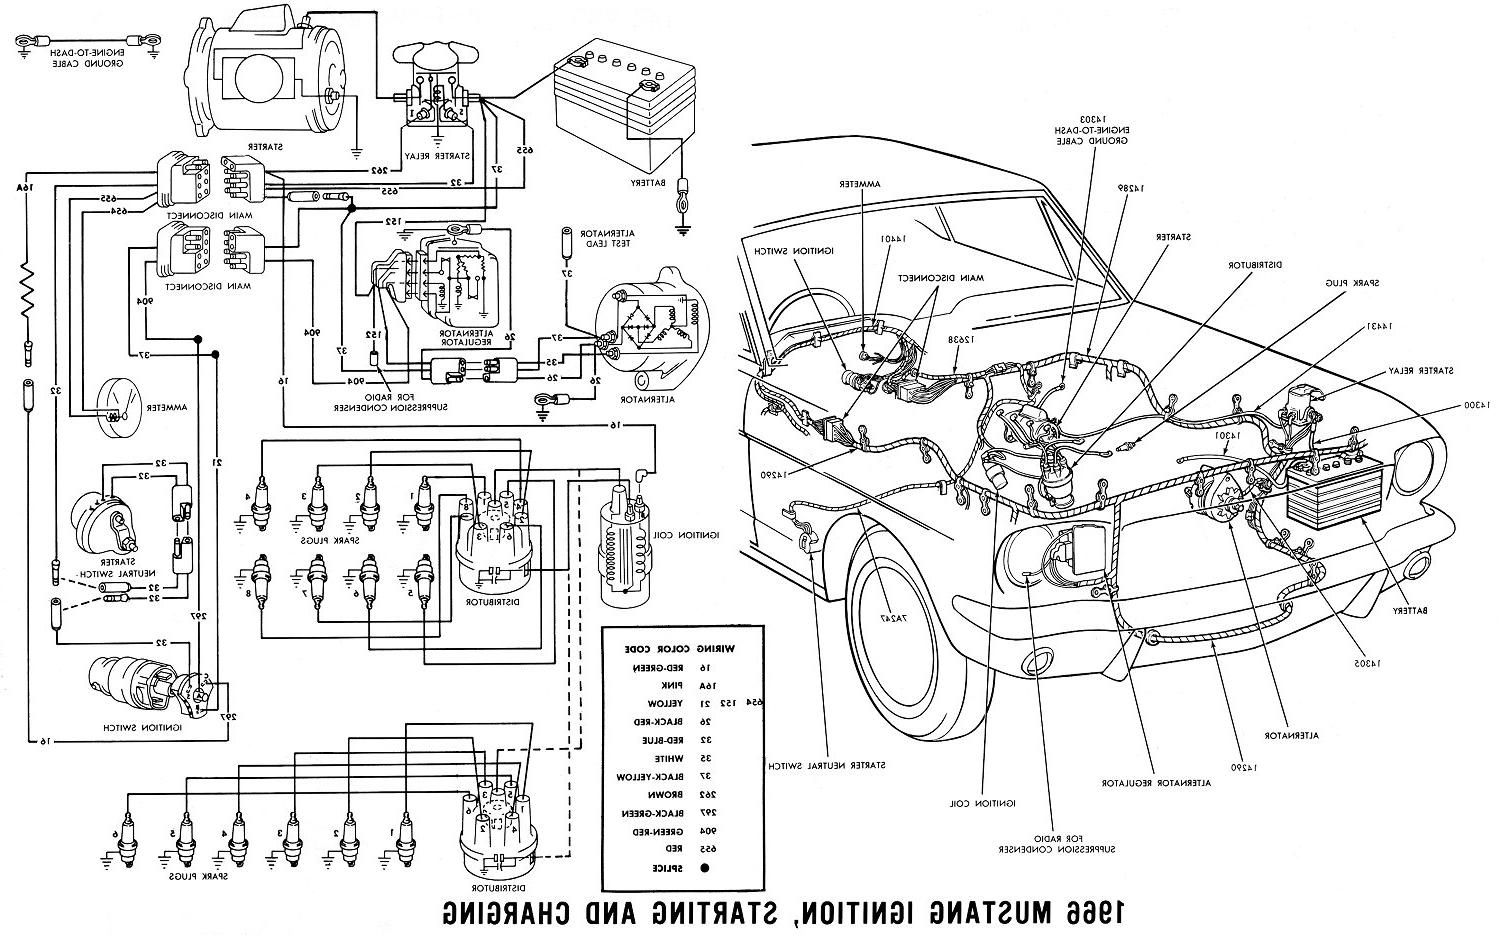 ignition switch wiring diagram on wiring harness 1966 chevy truck